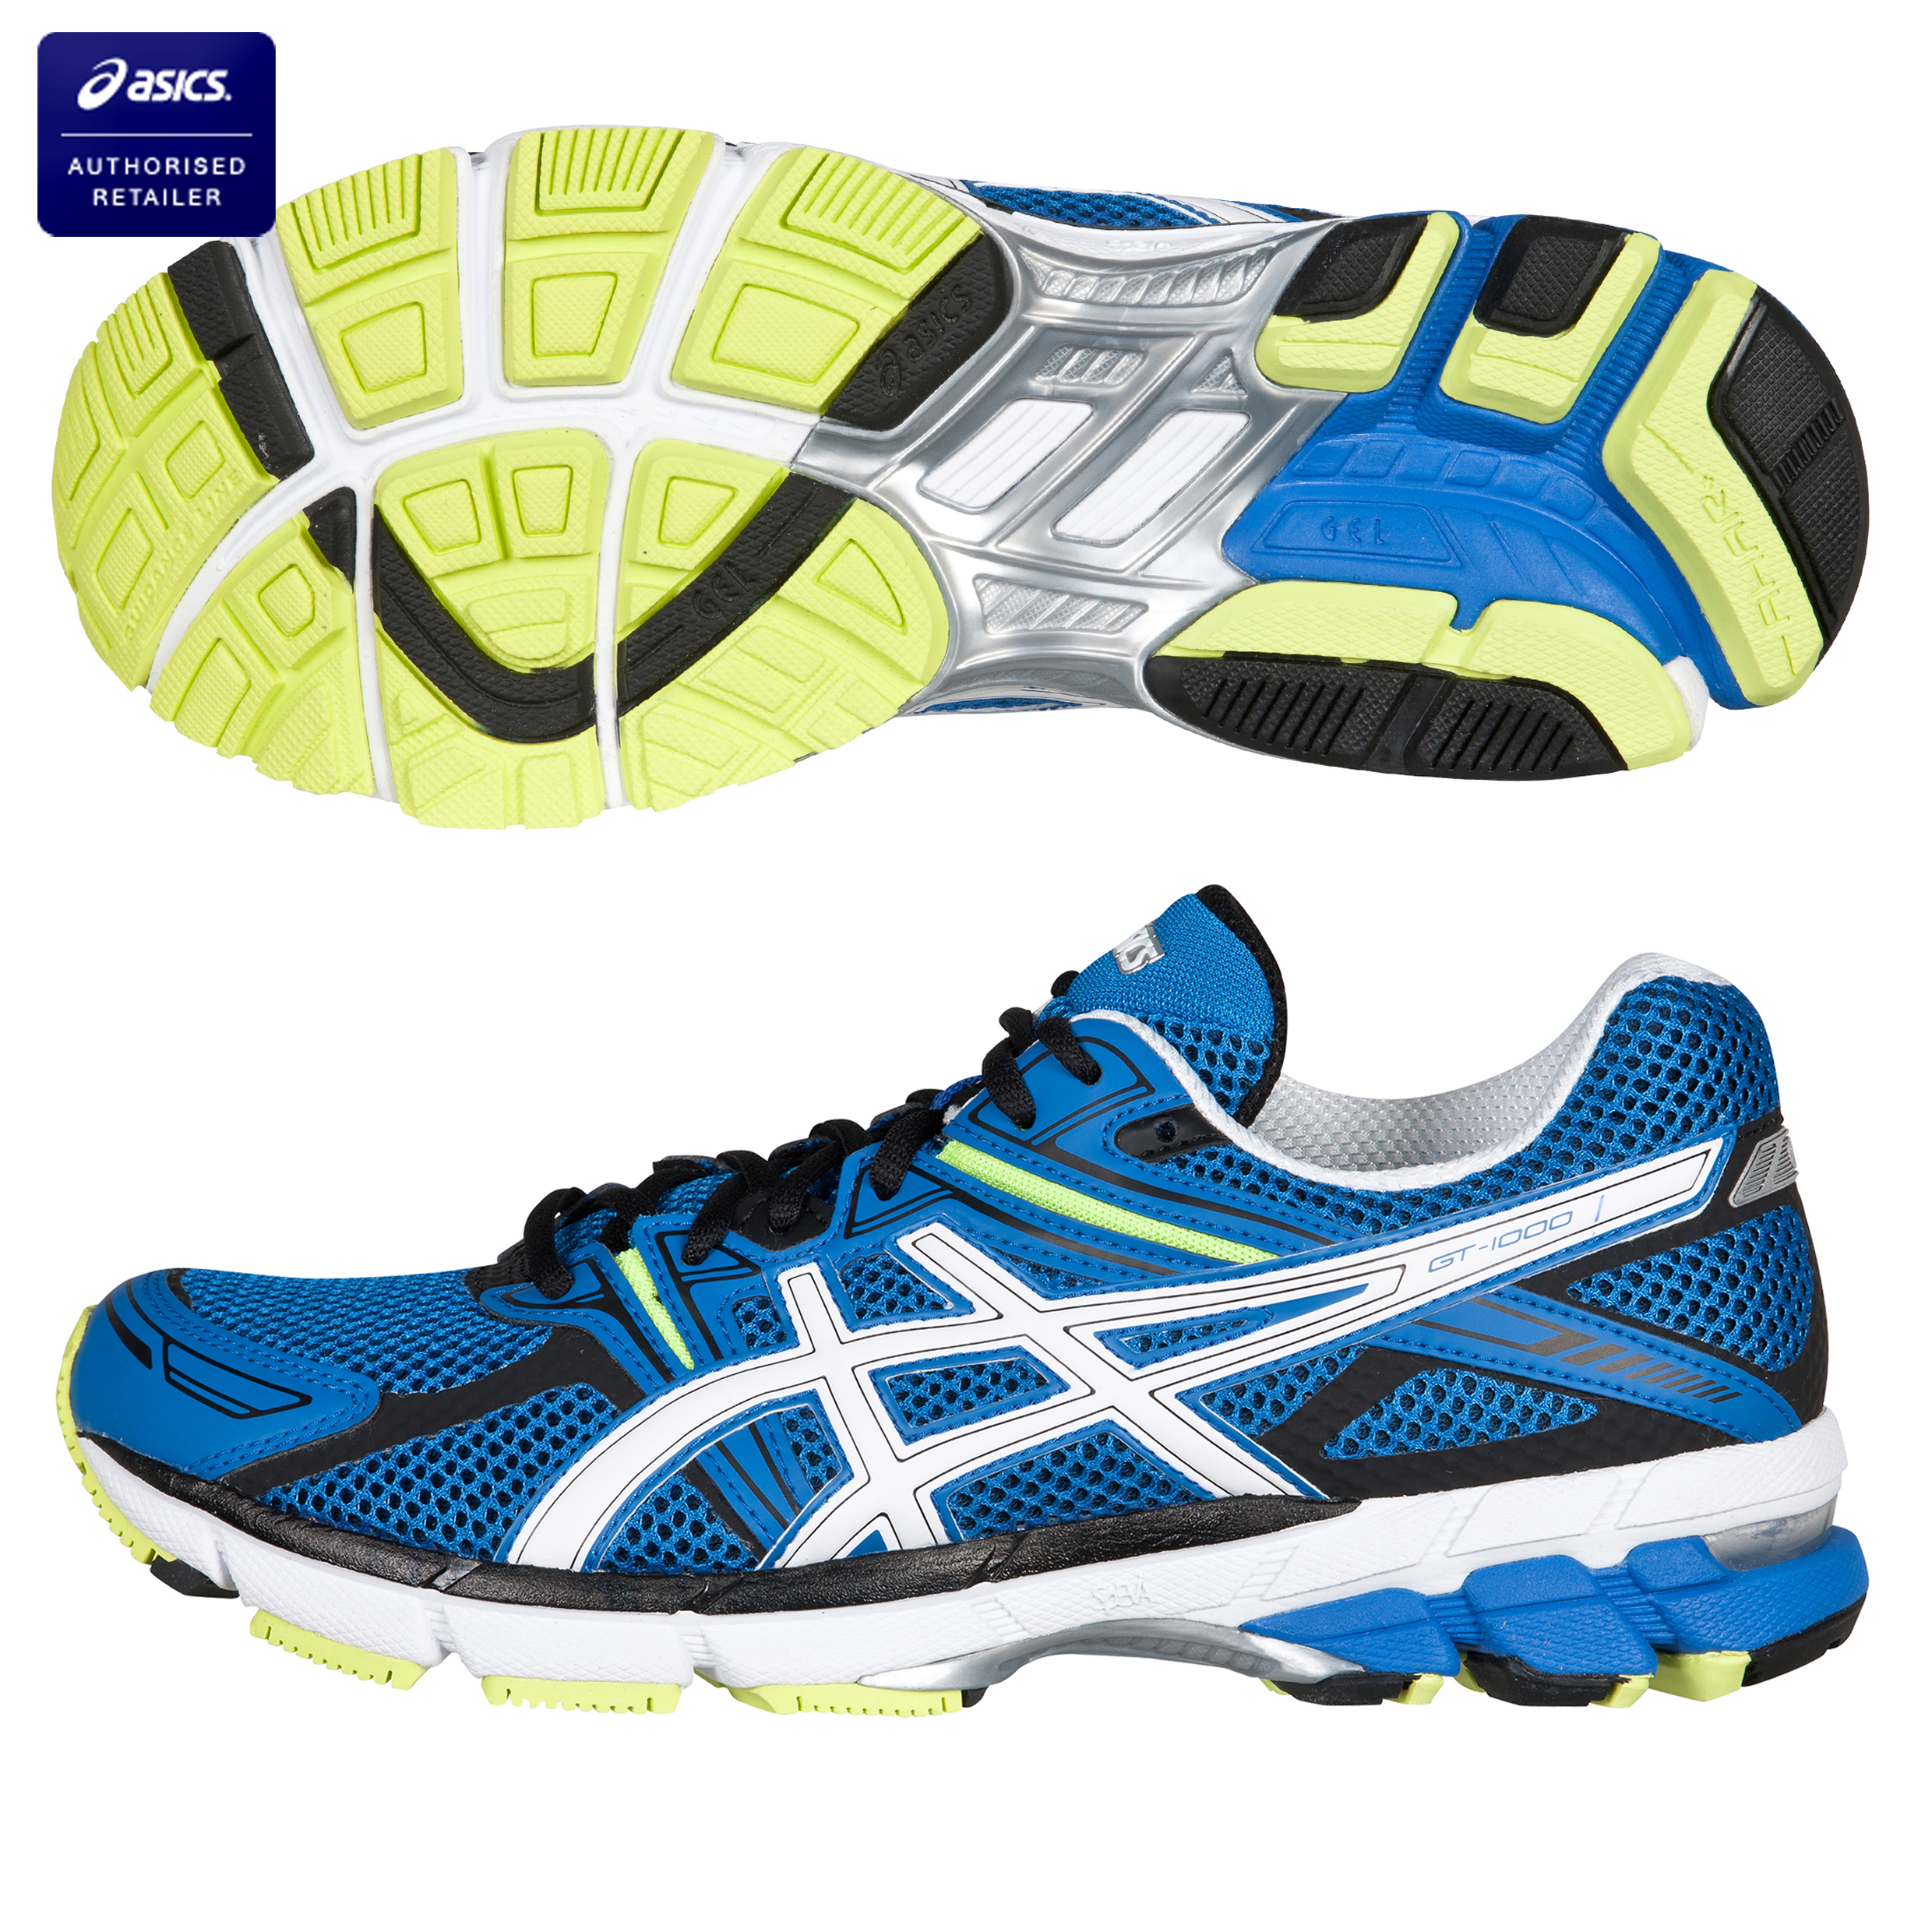 Asics GT 1000 Stability Running Trainers - Blue/White/Neon Yellow